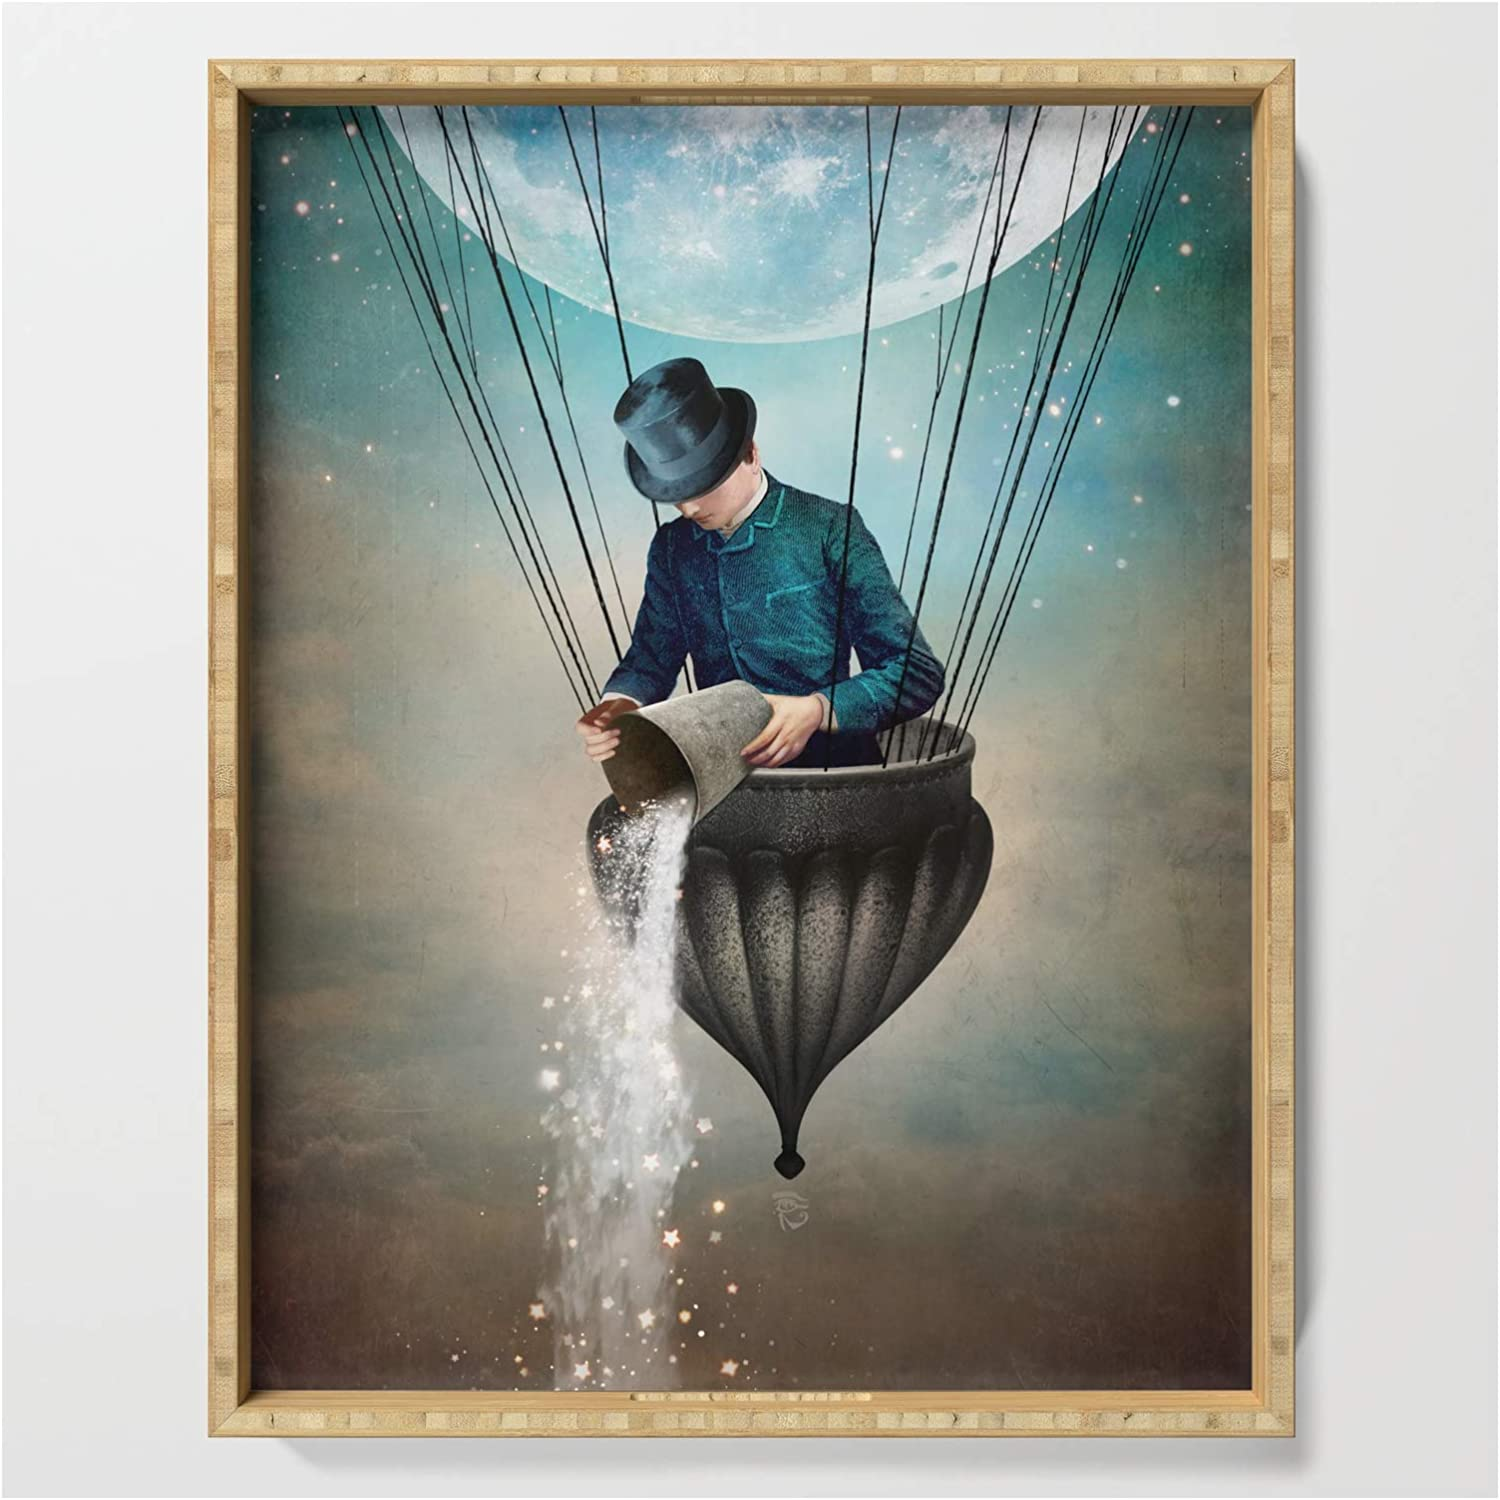 High In The Sky by Christian Schloe x 17 Serving 22.5